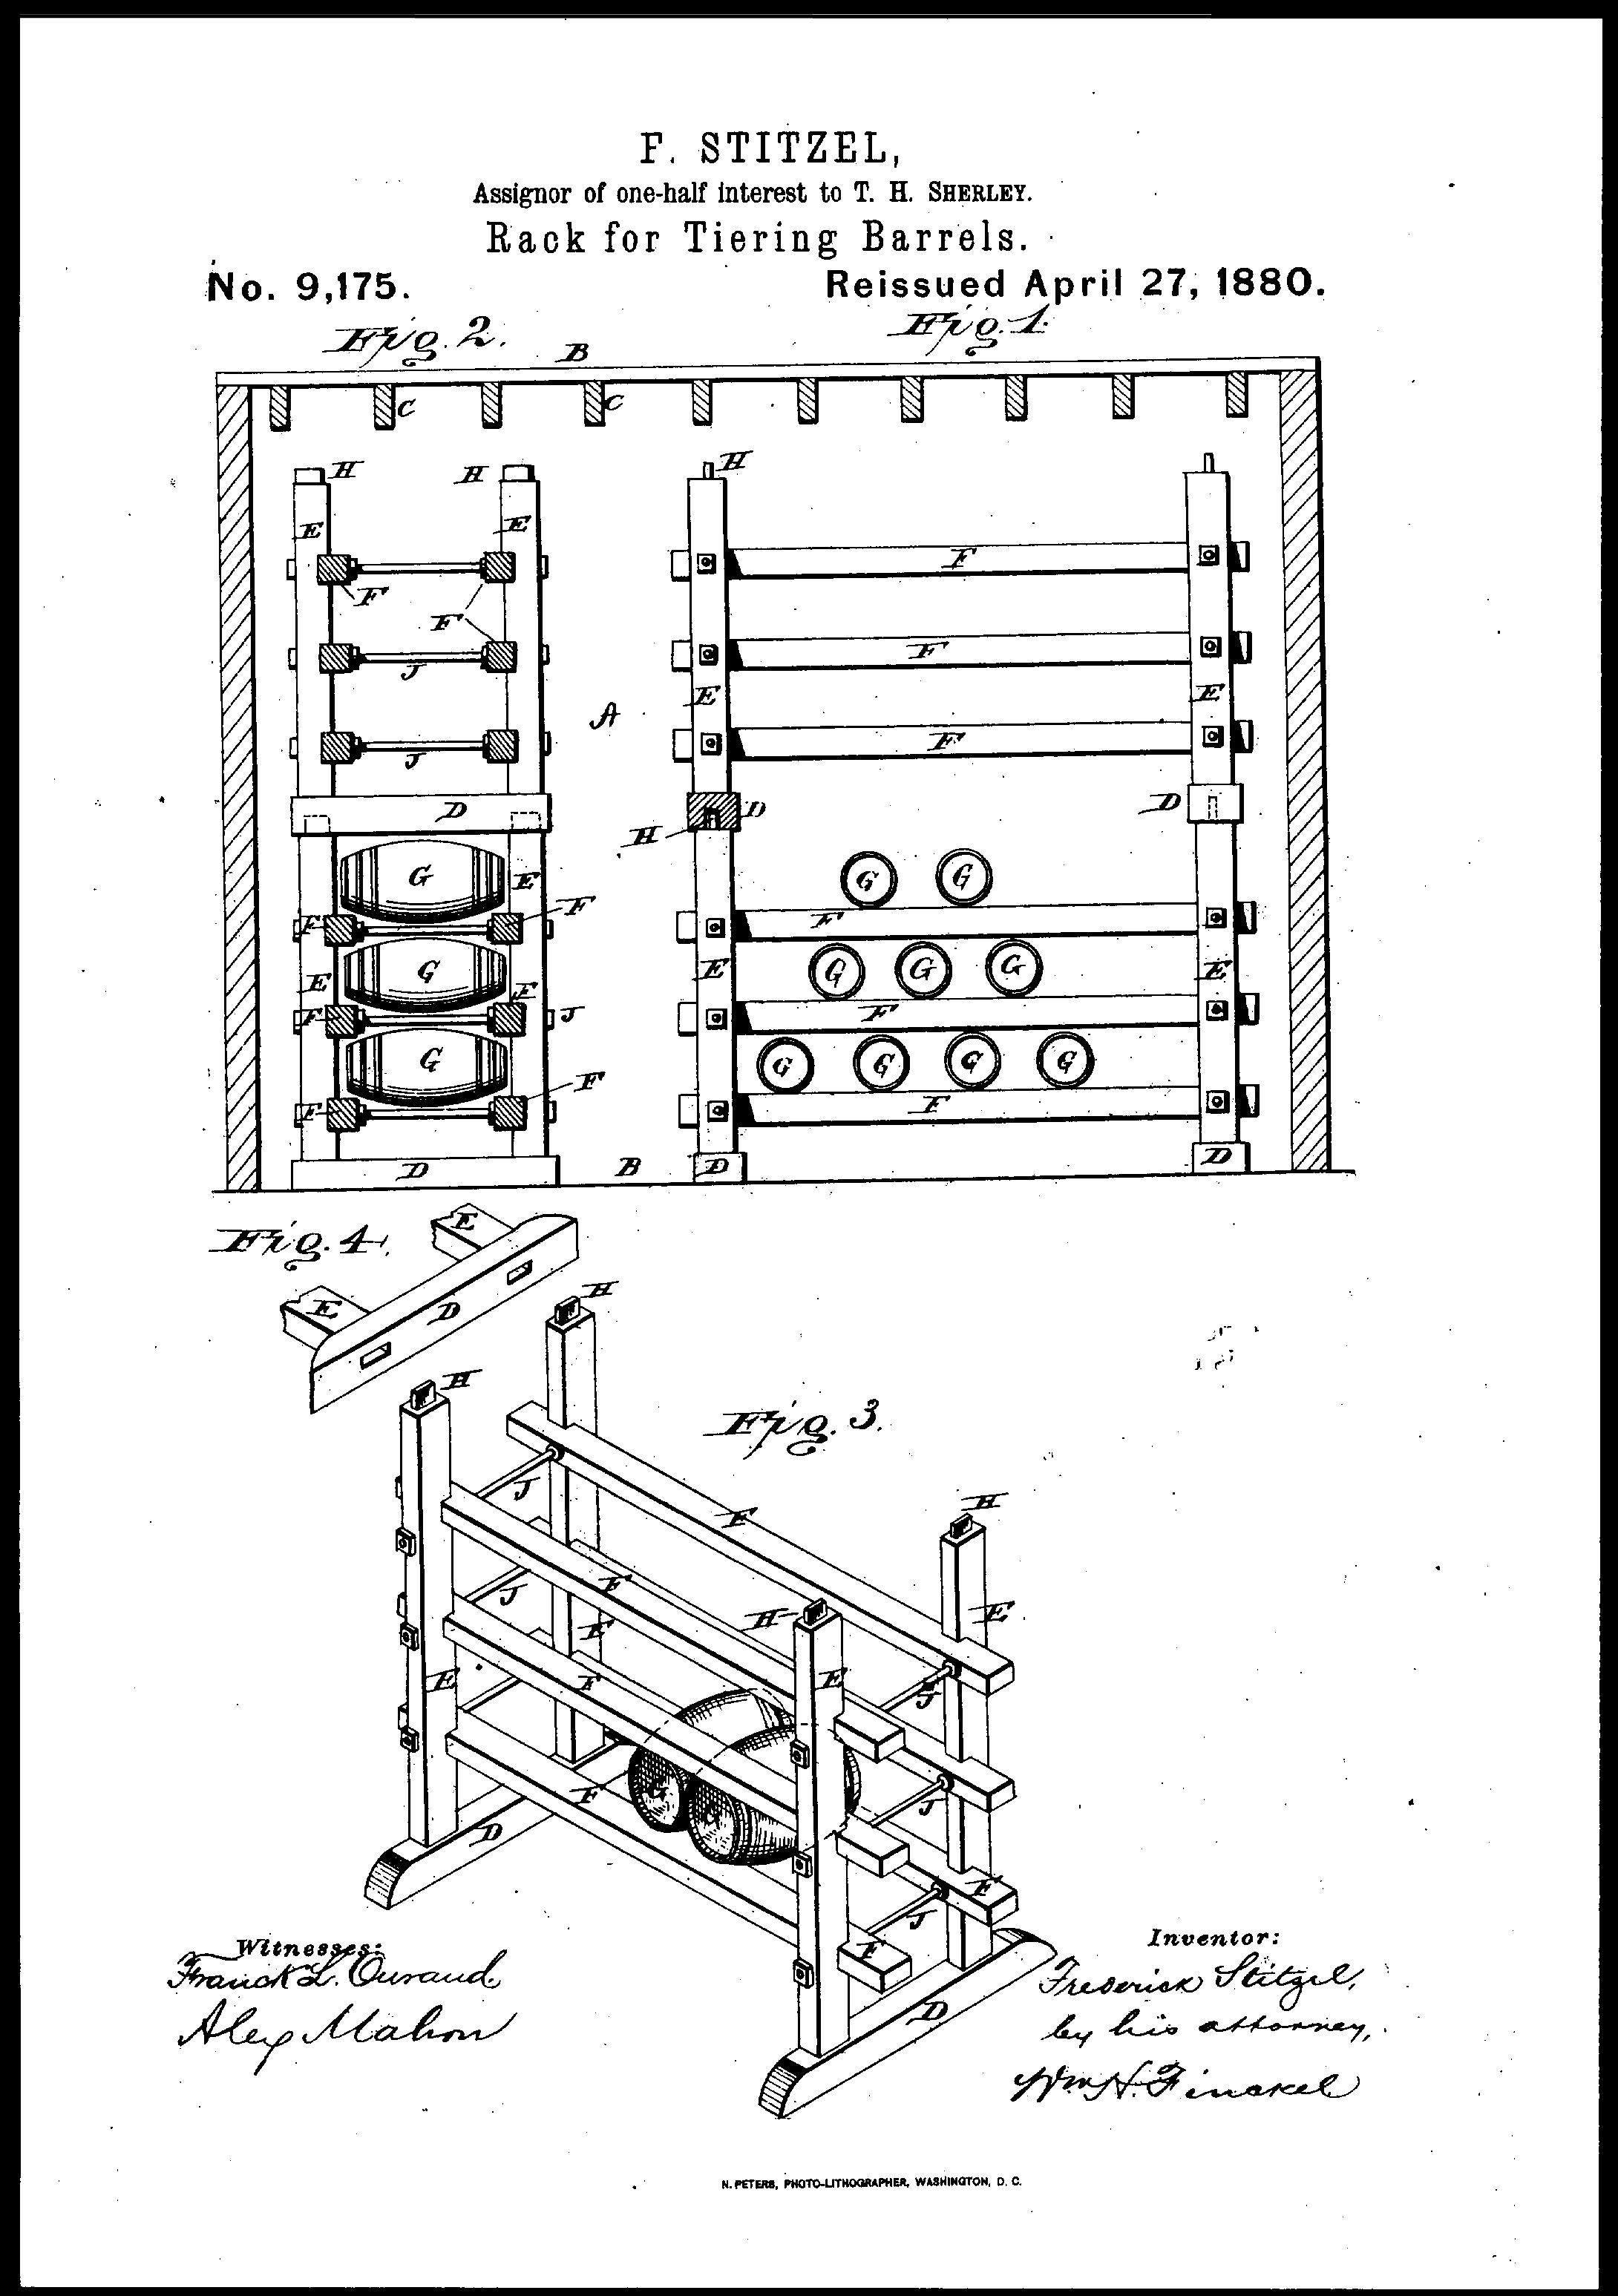 Frederick Stitzel's 1879 Patent for Improvement in Racks